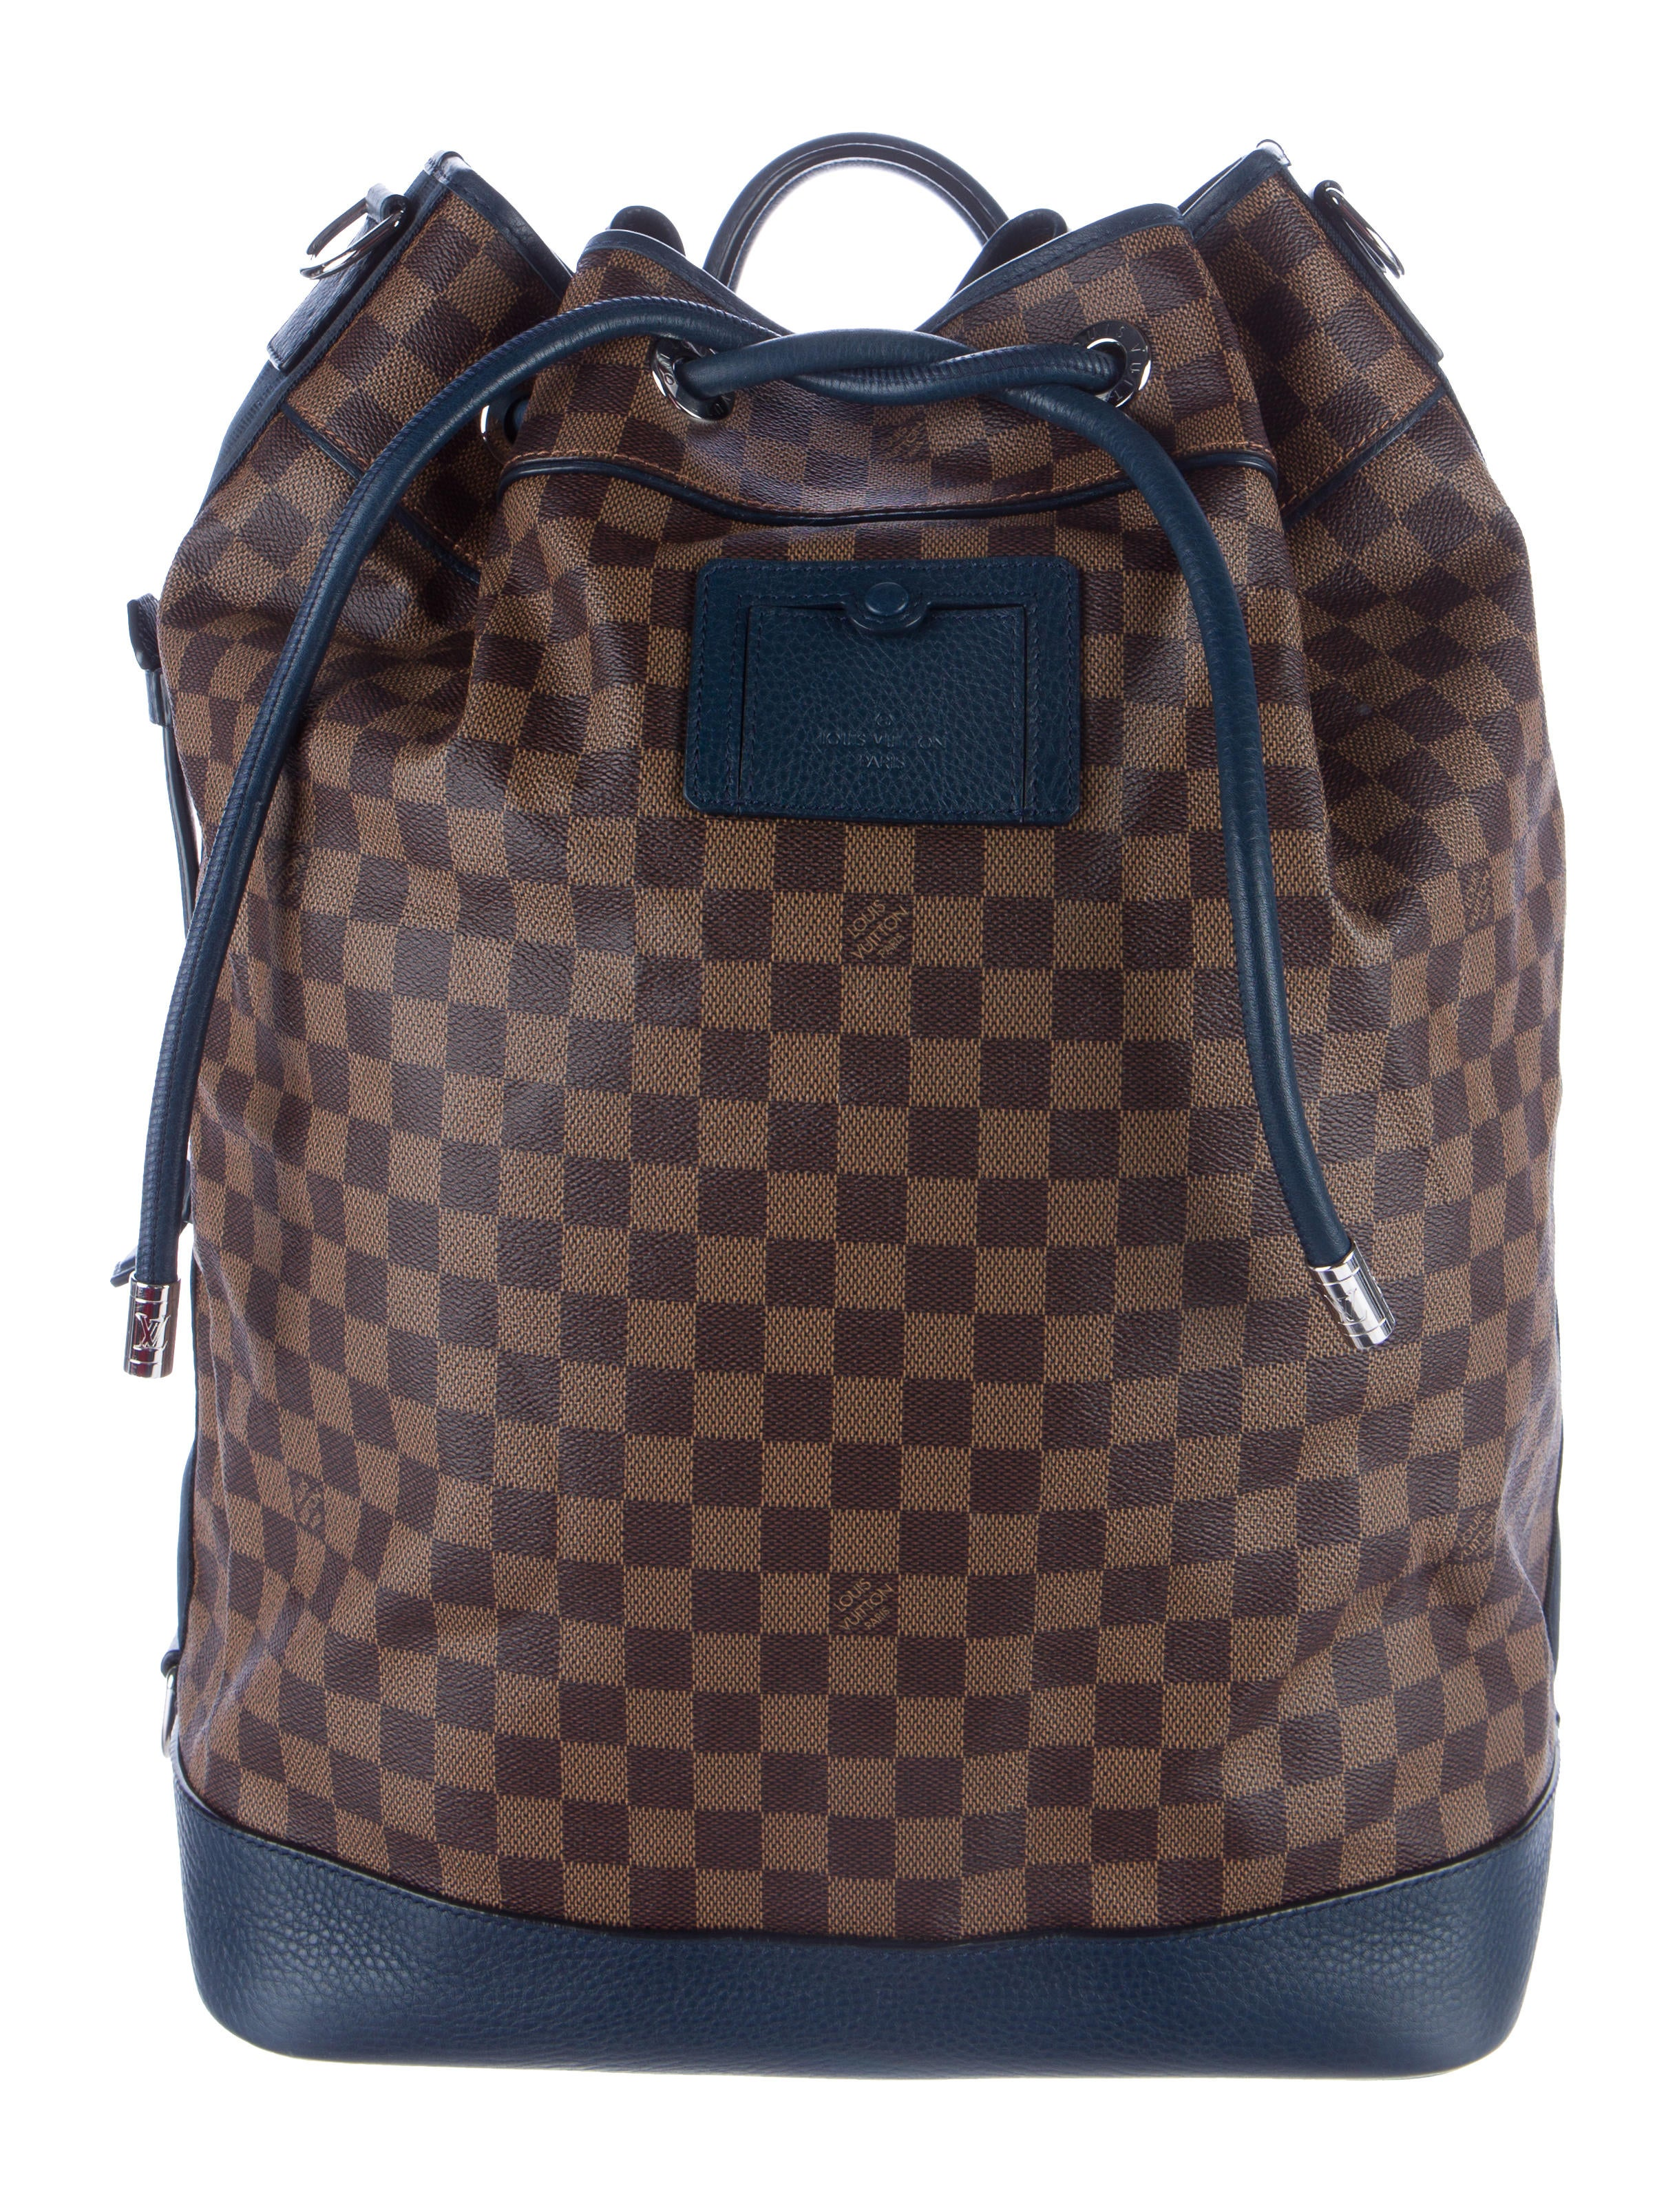 3fcb8fa0e6d Supreme X Louis Vuitton Christopher Backpack – Check Now Blog Supreme  Damier Backpack